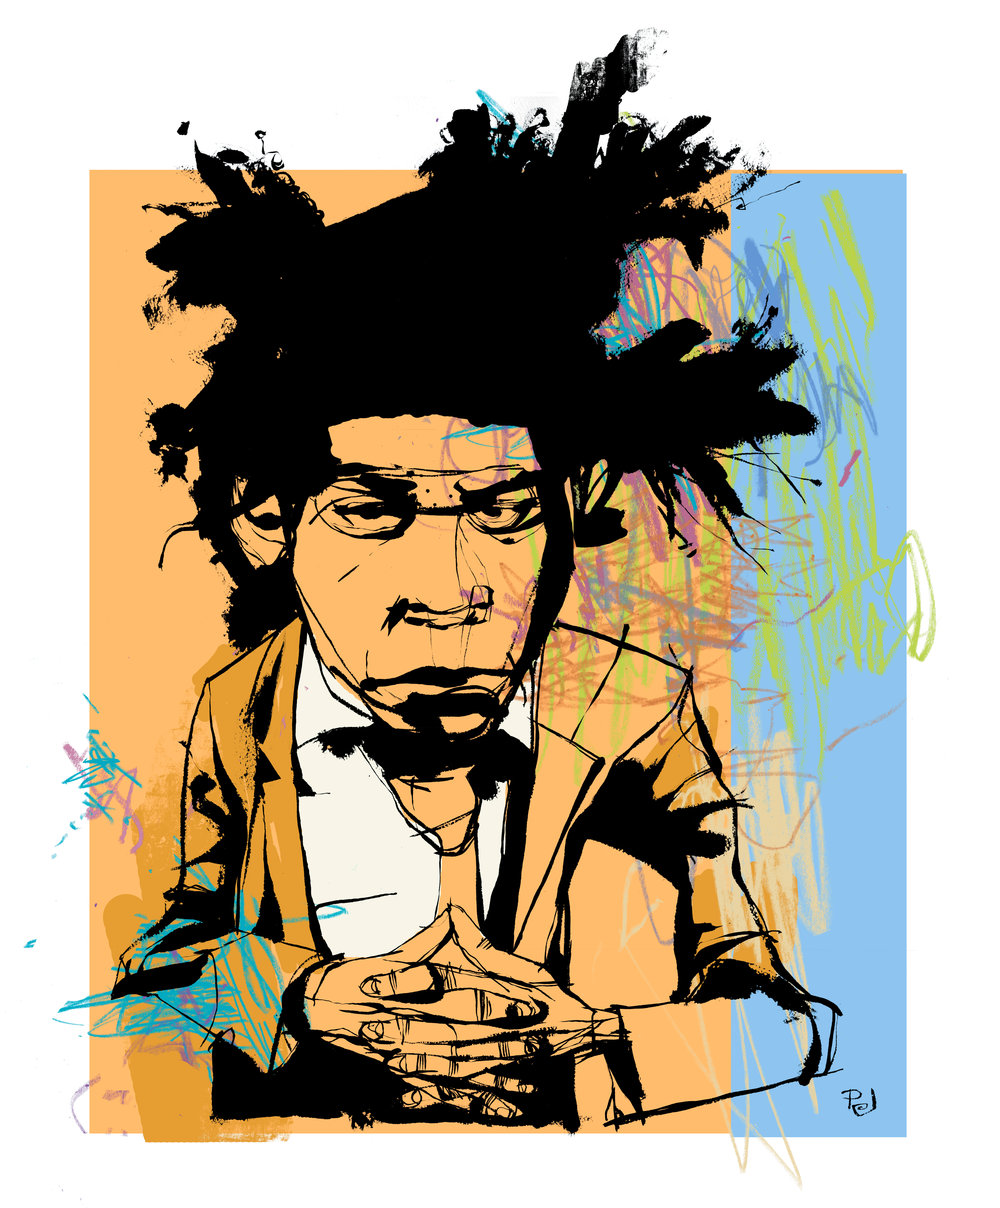 Jean michel basquiat clipart vector royalty free library A Basquiat Painting Transforms a College Museum into a Space for ... vector royalty free library